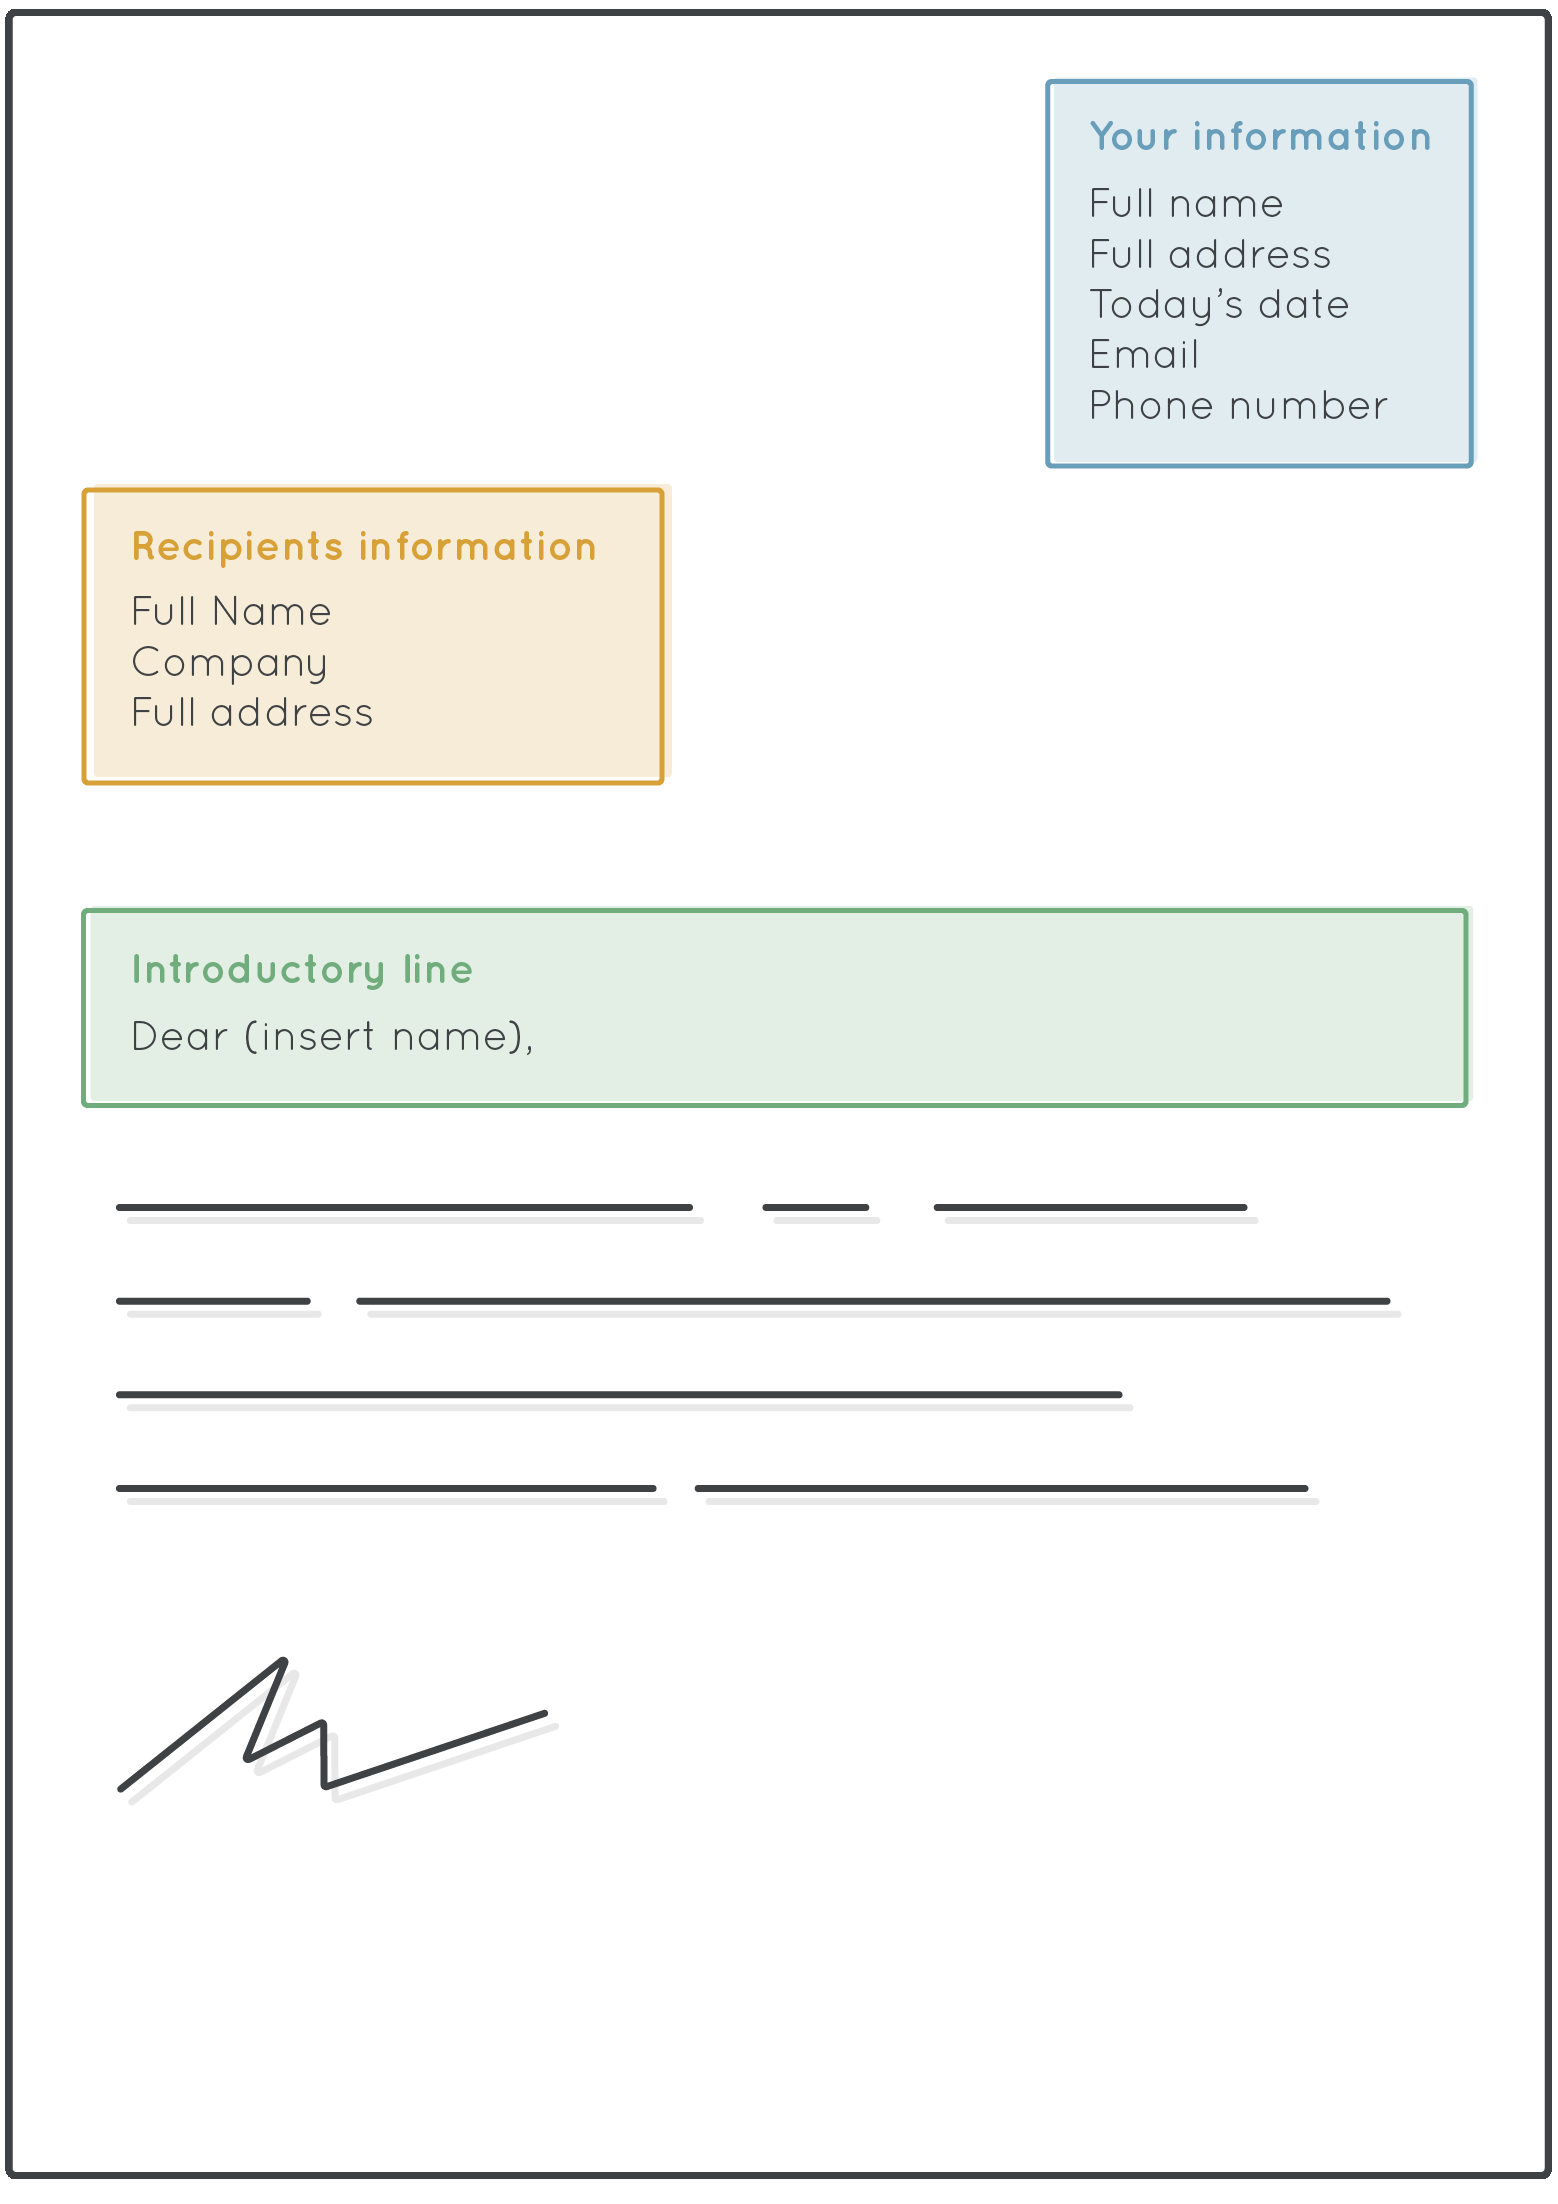 letter template address placement  How To Write A Formal Letter: Format & Template | UK Postbox - letter template address placement